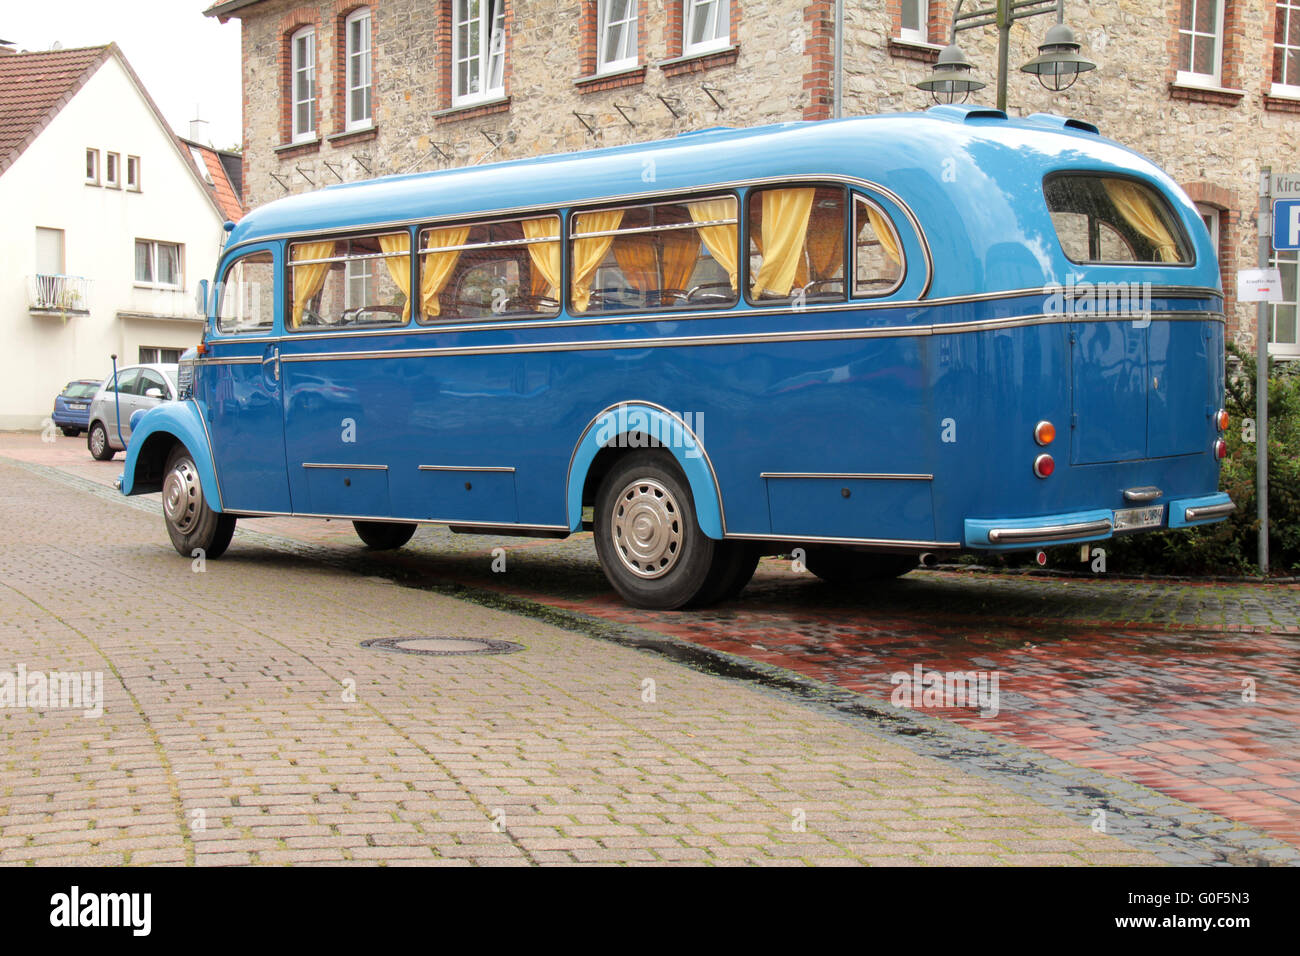 old travel bus - Stock Image